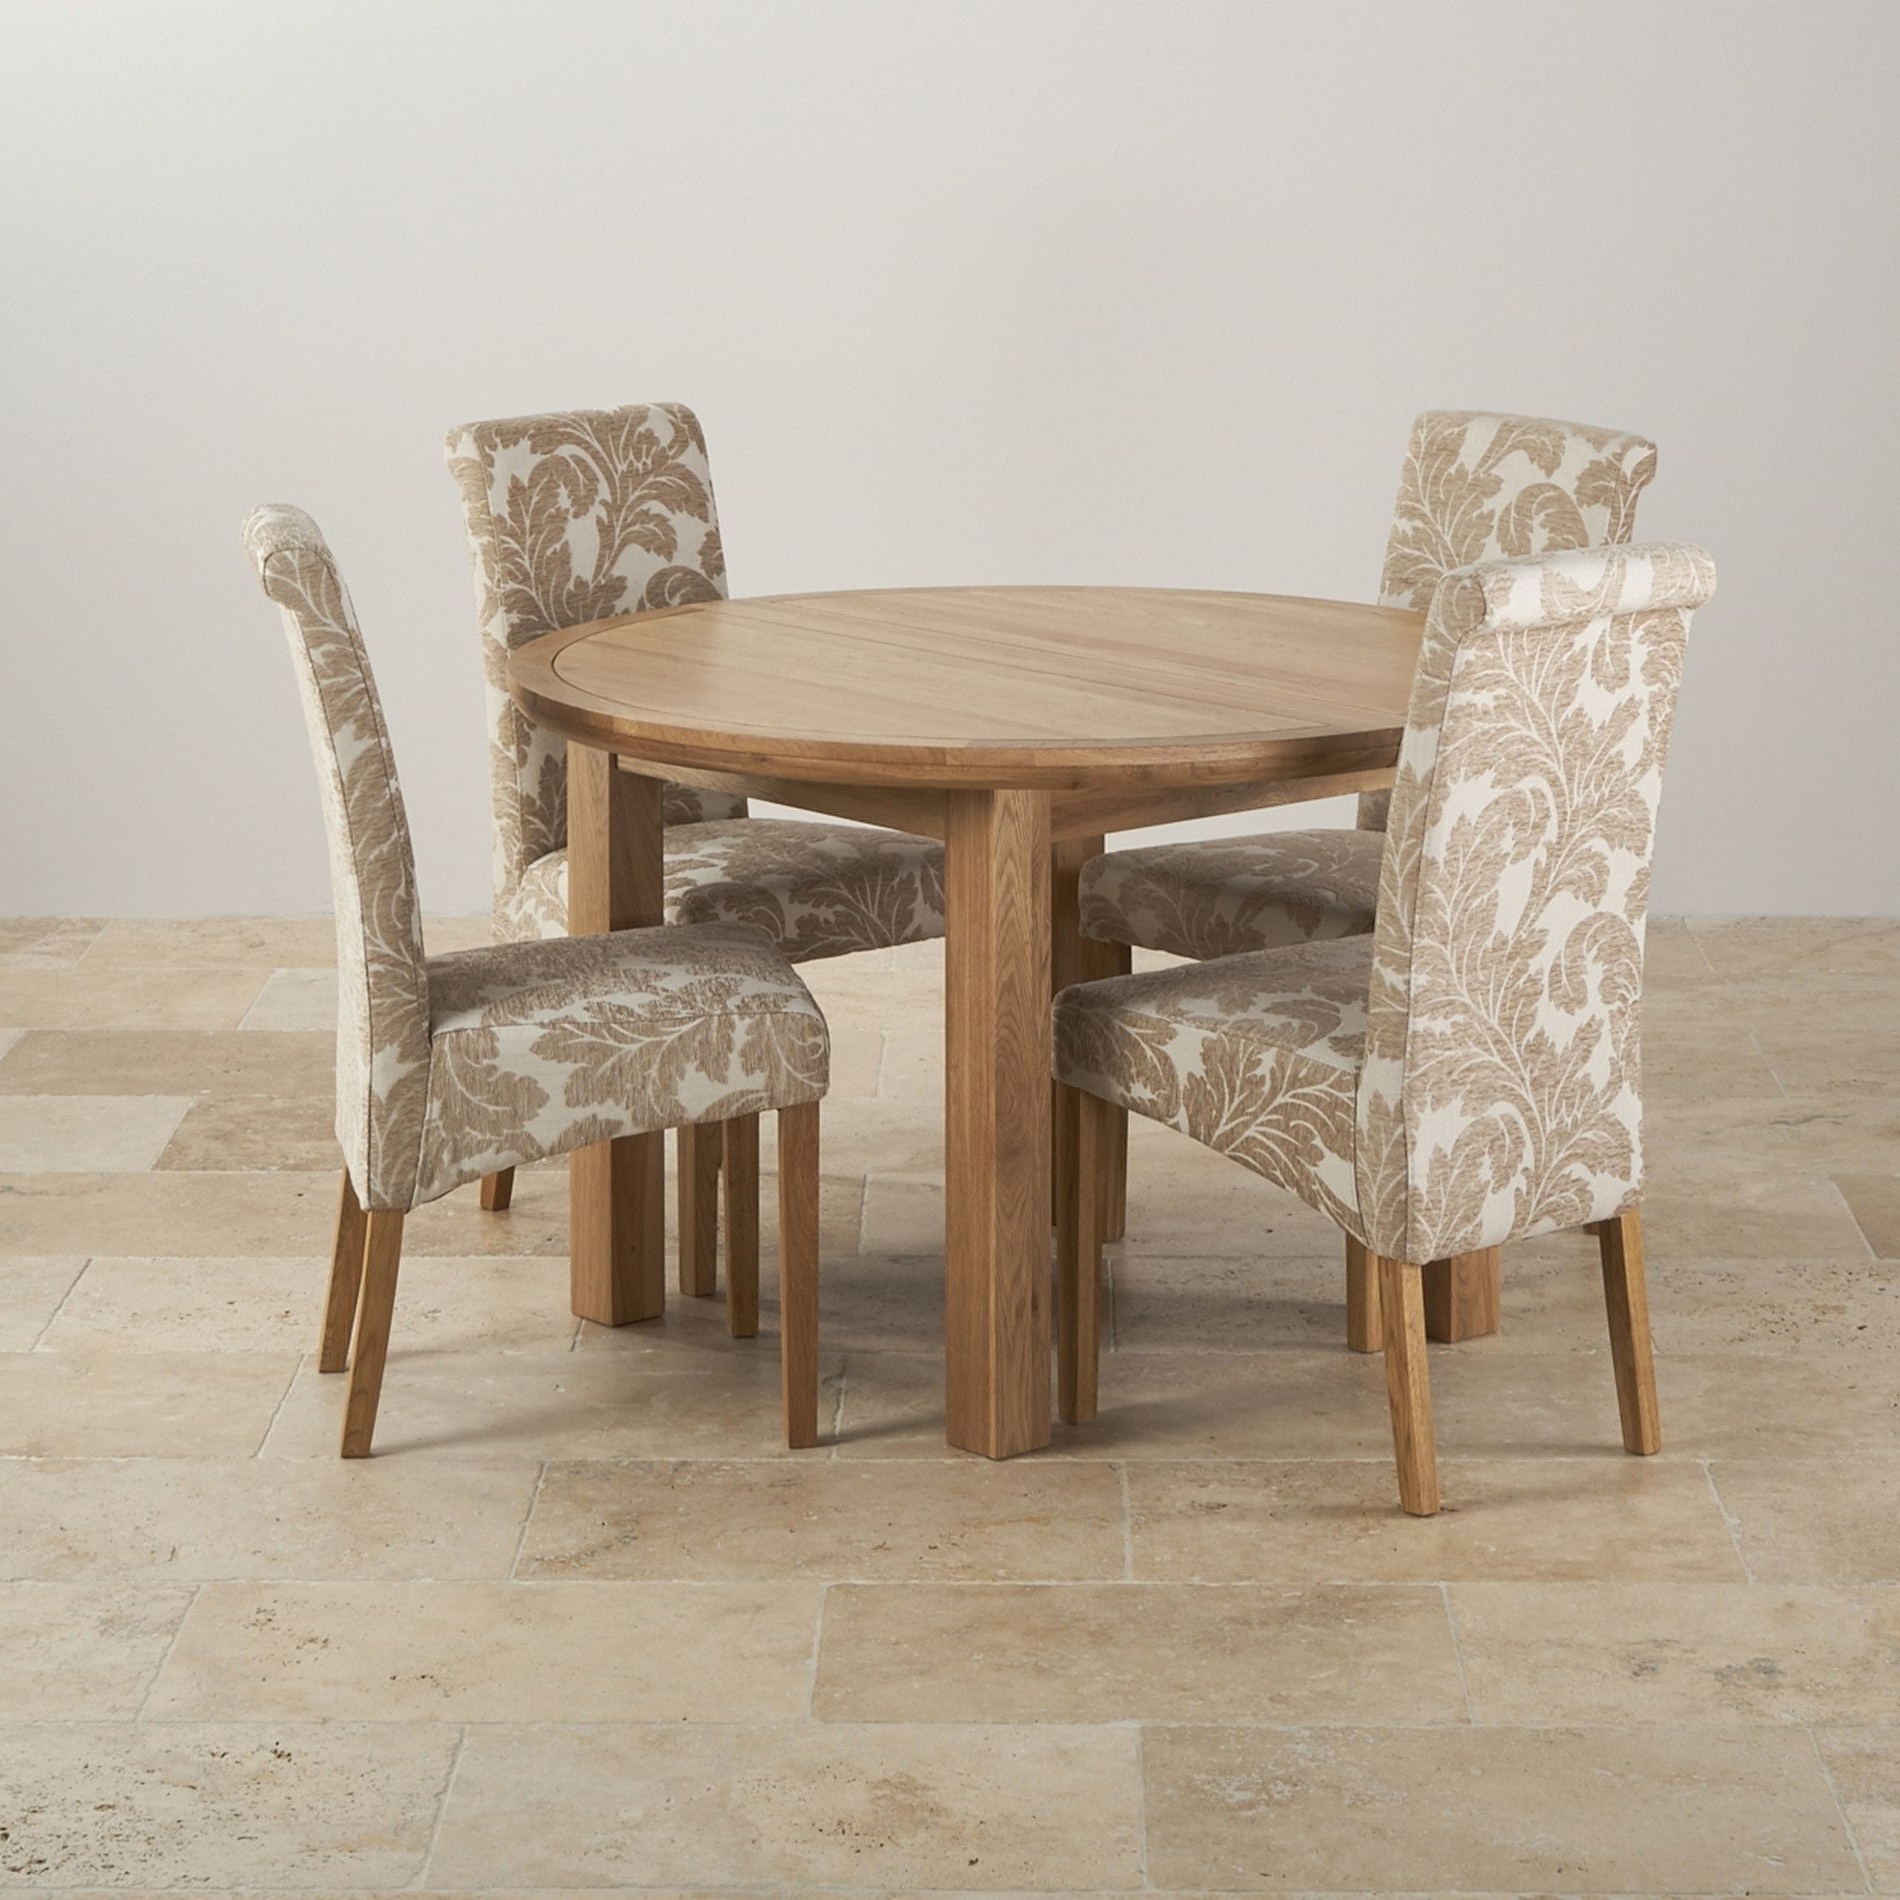 Latest Knightsbridge Natural Oak Dining Set – 4Ft Round Extending Table & 4 With Regard To Extendable Oak Dining Tables And Chairs (View 12 of 25)